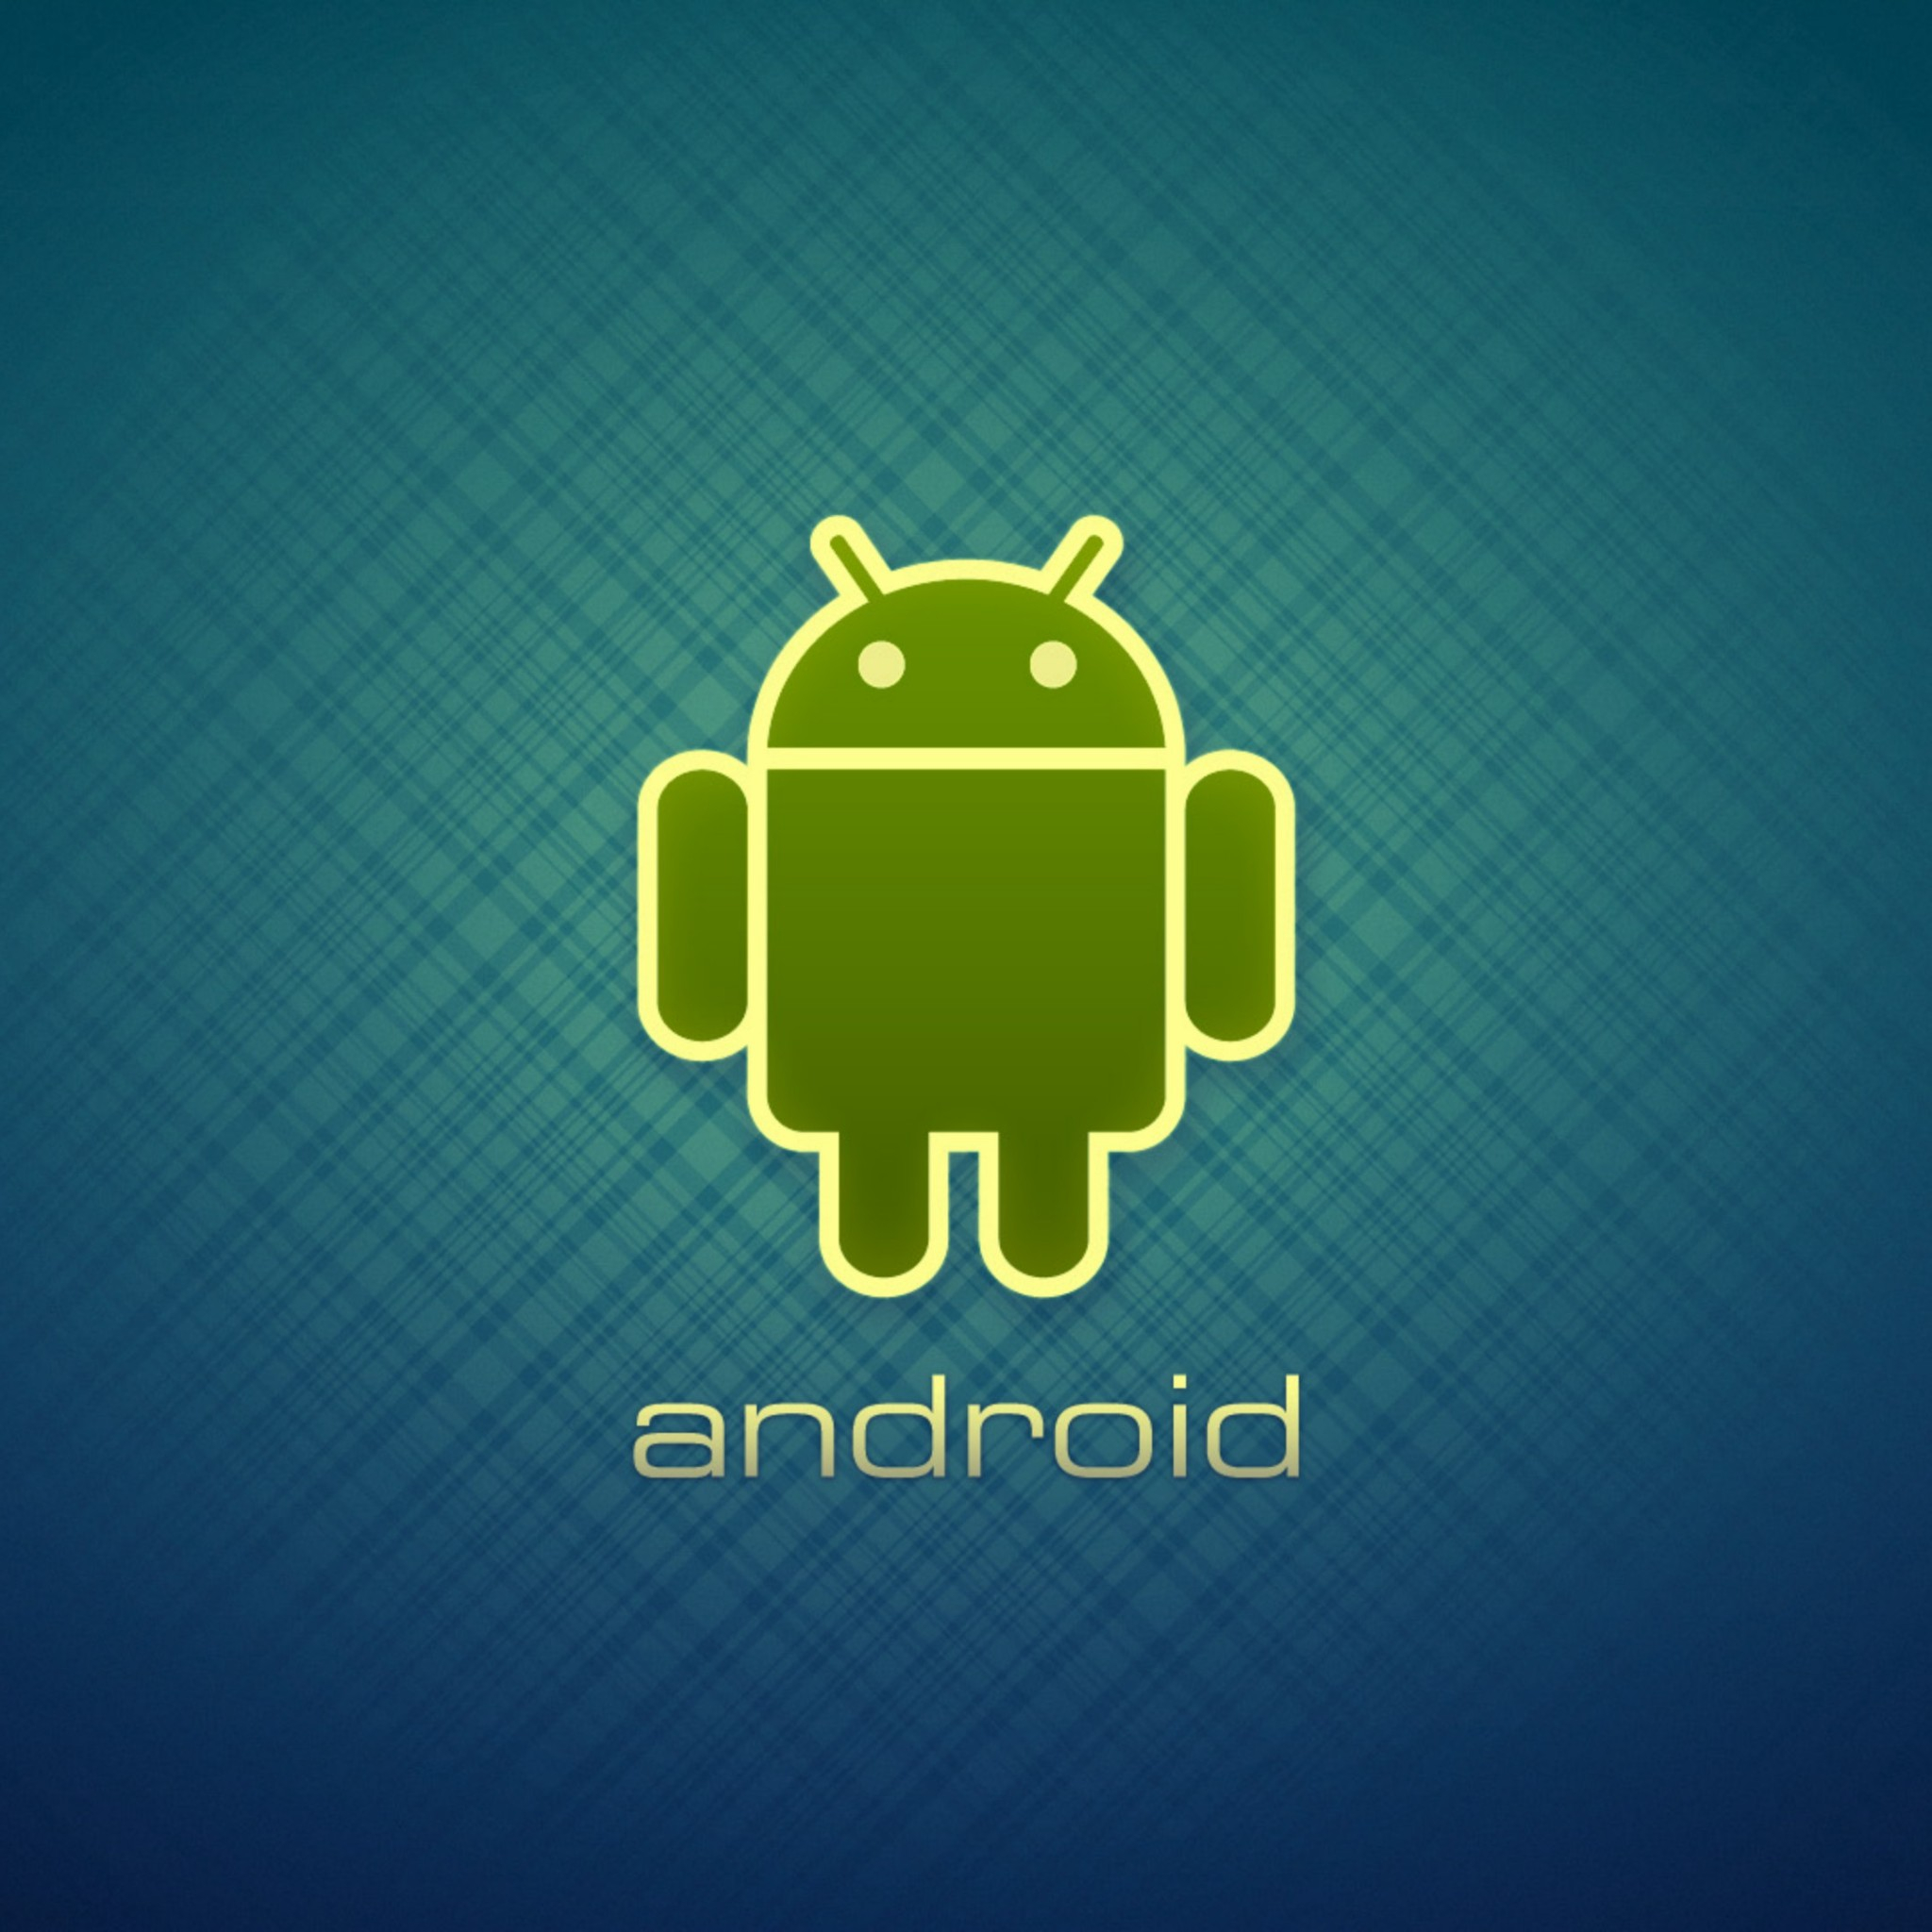 TJwxJR to creative android logo 4k wallpapers imagenes